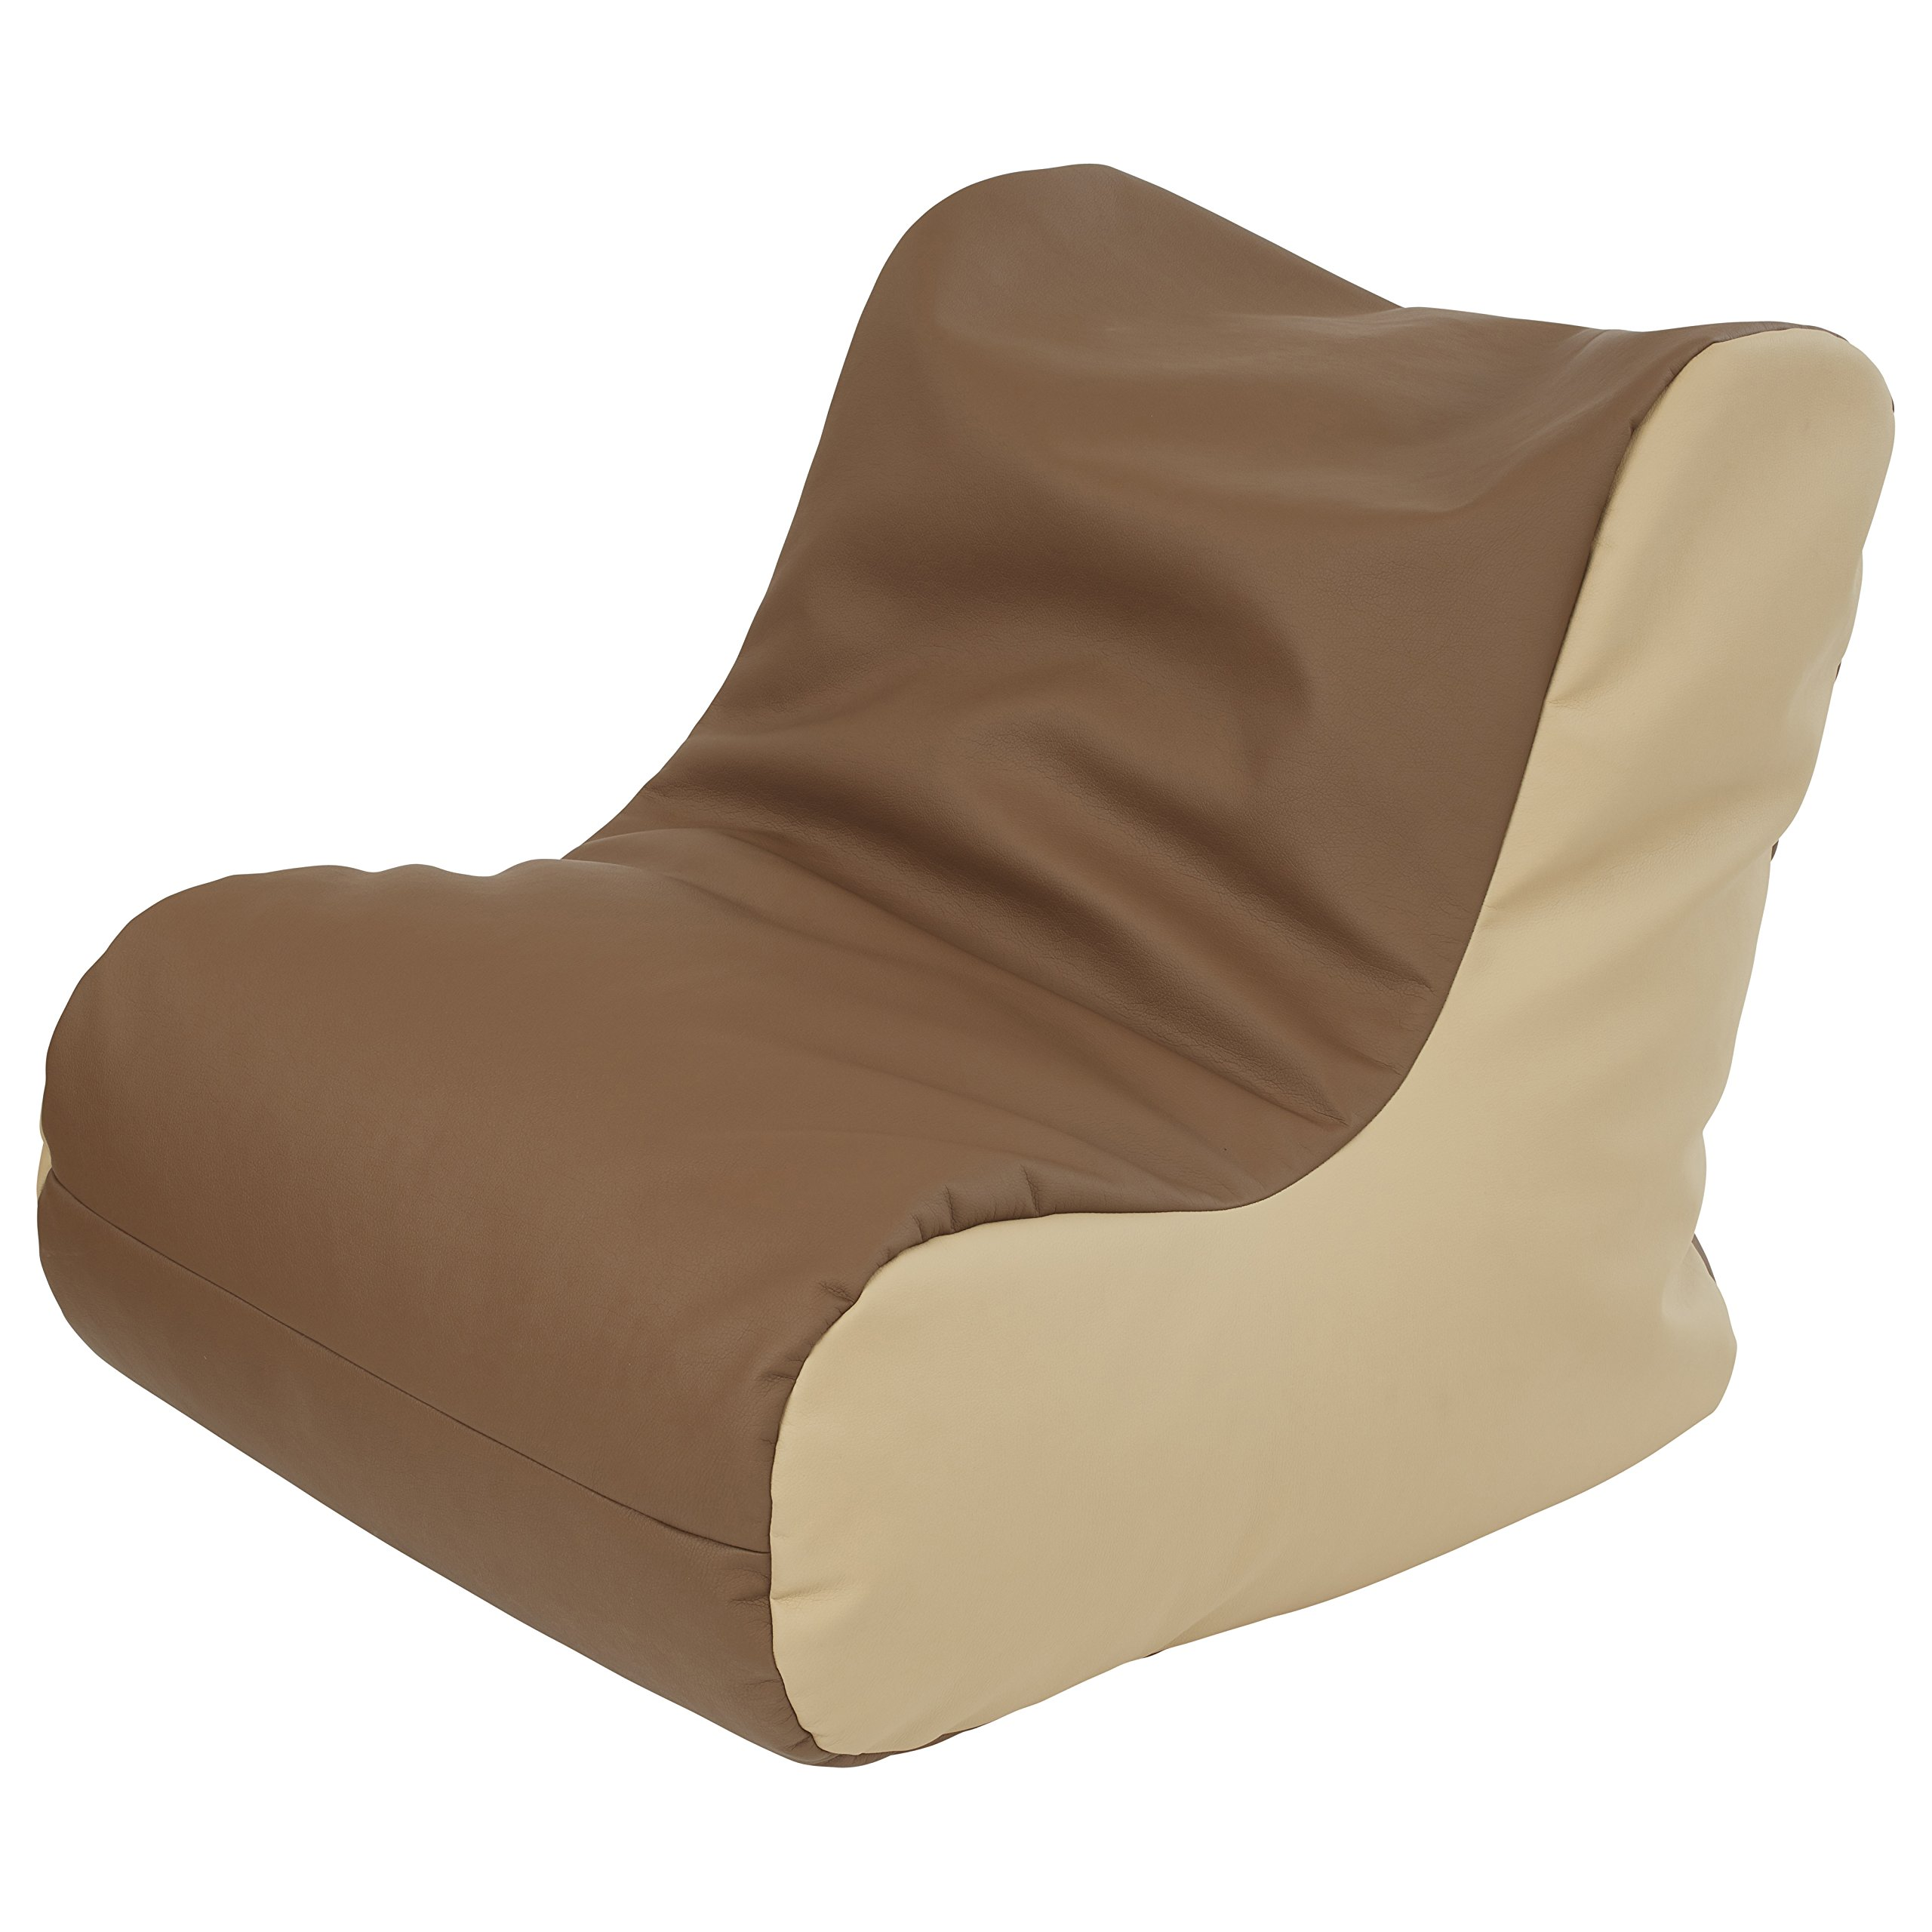 ECR4Kids SoftZone Youth Bean Bag Soft Seat, Chocolate and Sand by ECR4Kids